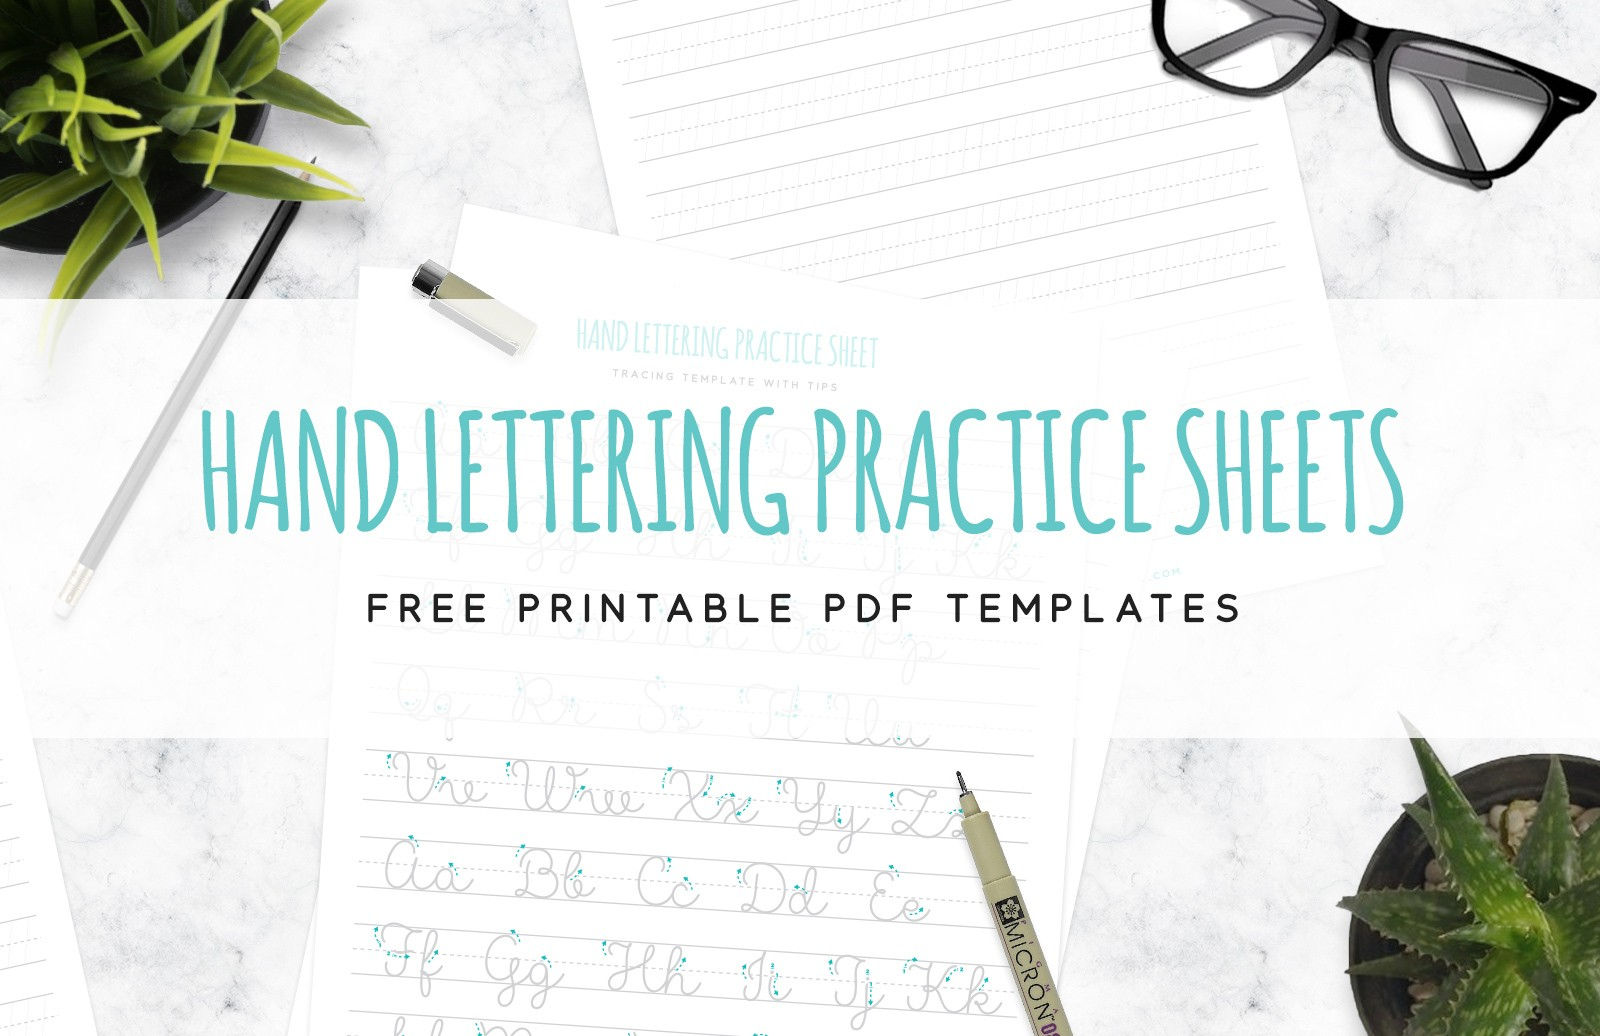 Hand Lettering Practice Sheets Preview 1